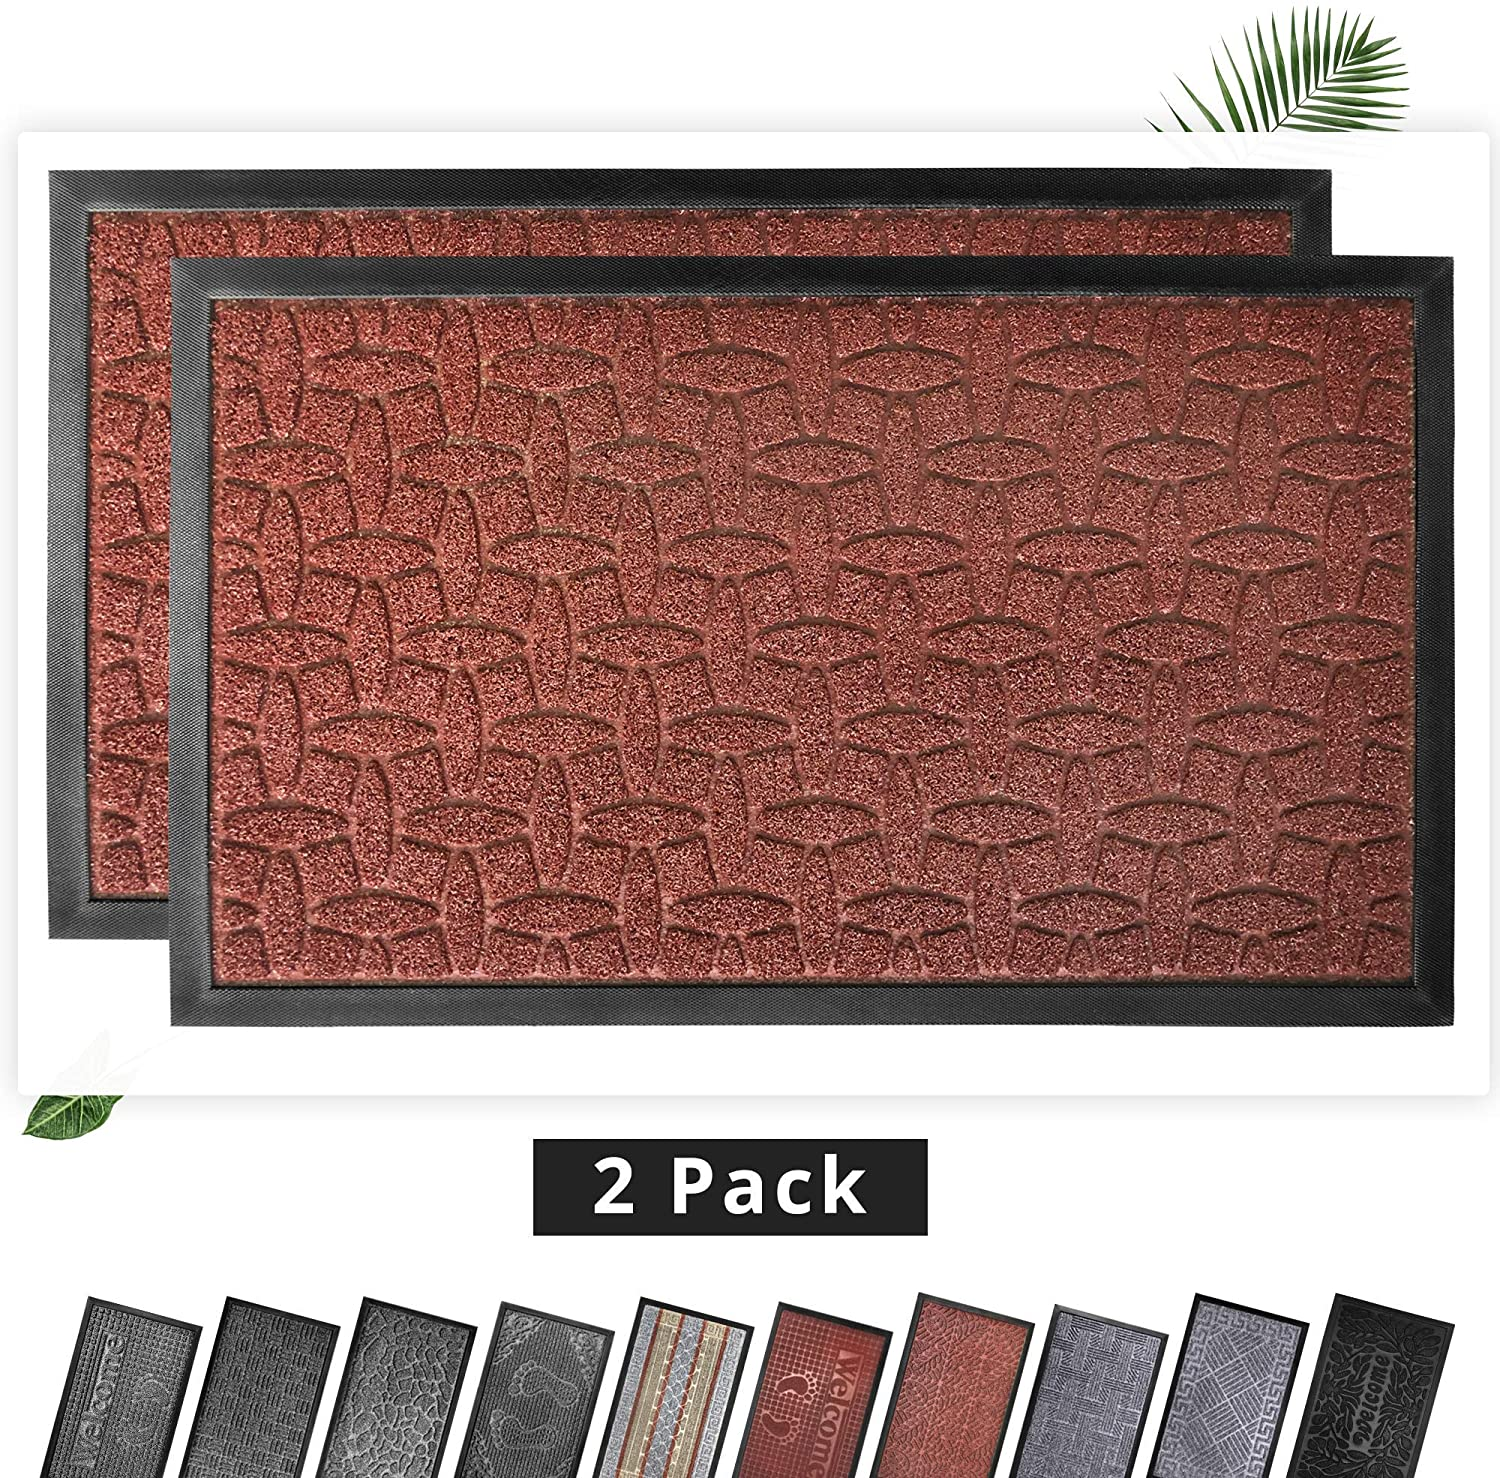 EZHOMEE Outdoor Rubber Welcome Door Mat(29.5x17.7), Durable and Non-Slip, Heavy Duty, Entry Floor Mats for Front Door, Entrance, Patio, Porch, High Traffic Areas for Dog Paw, Brown Geometry, 2 Pack